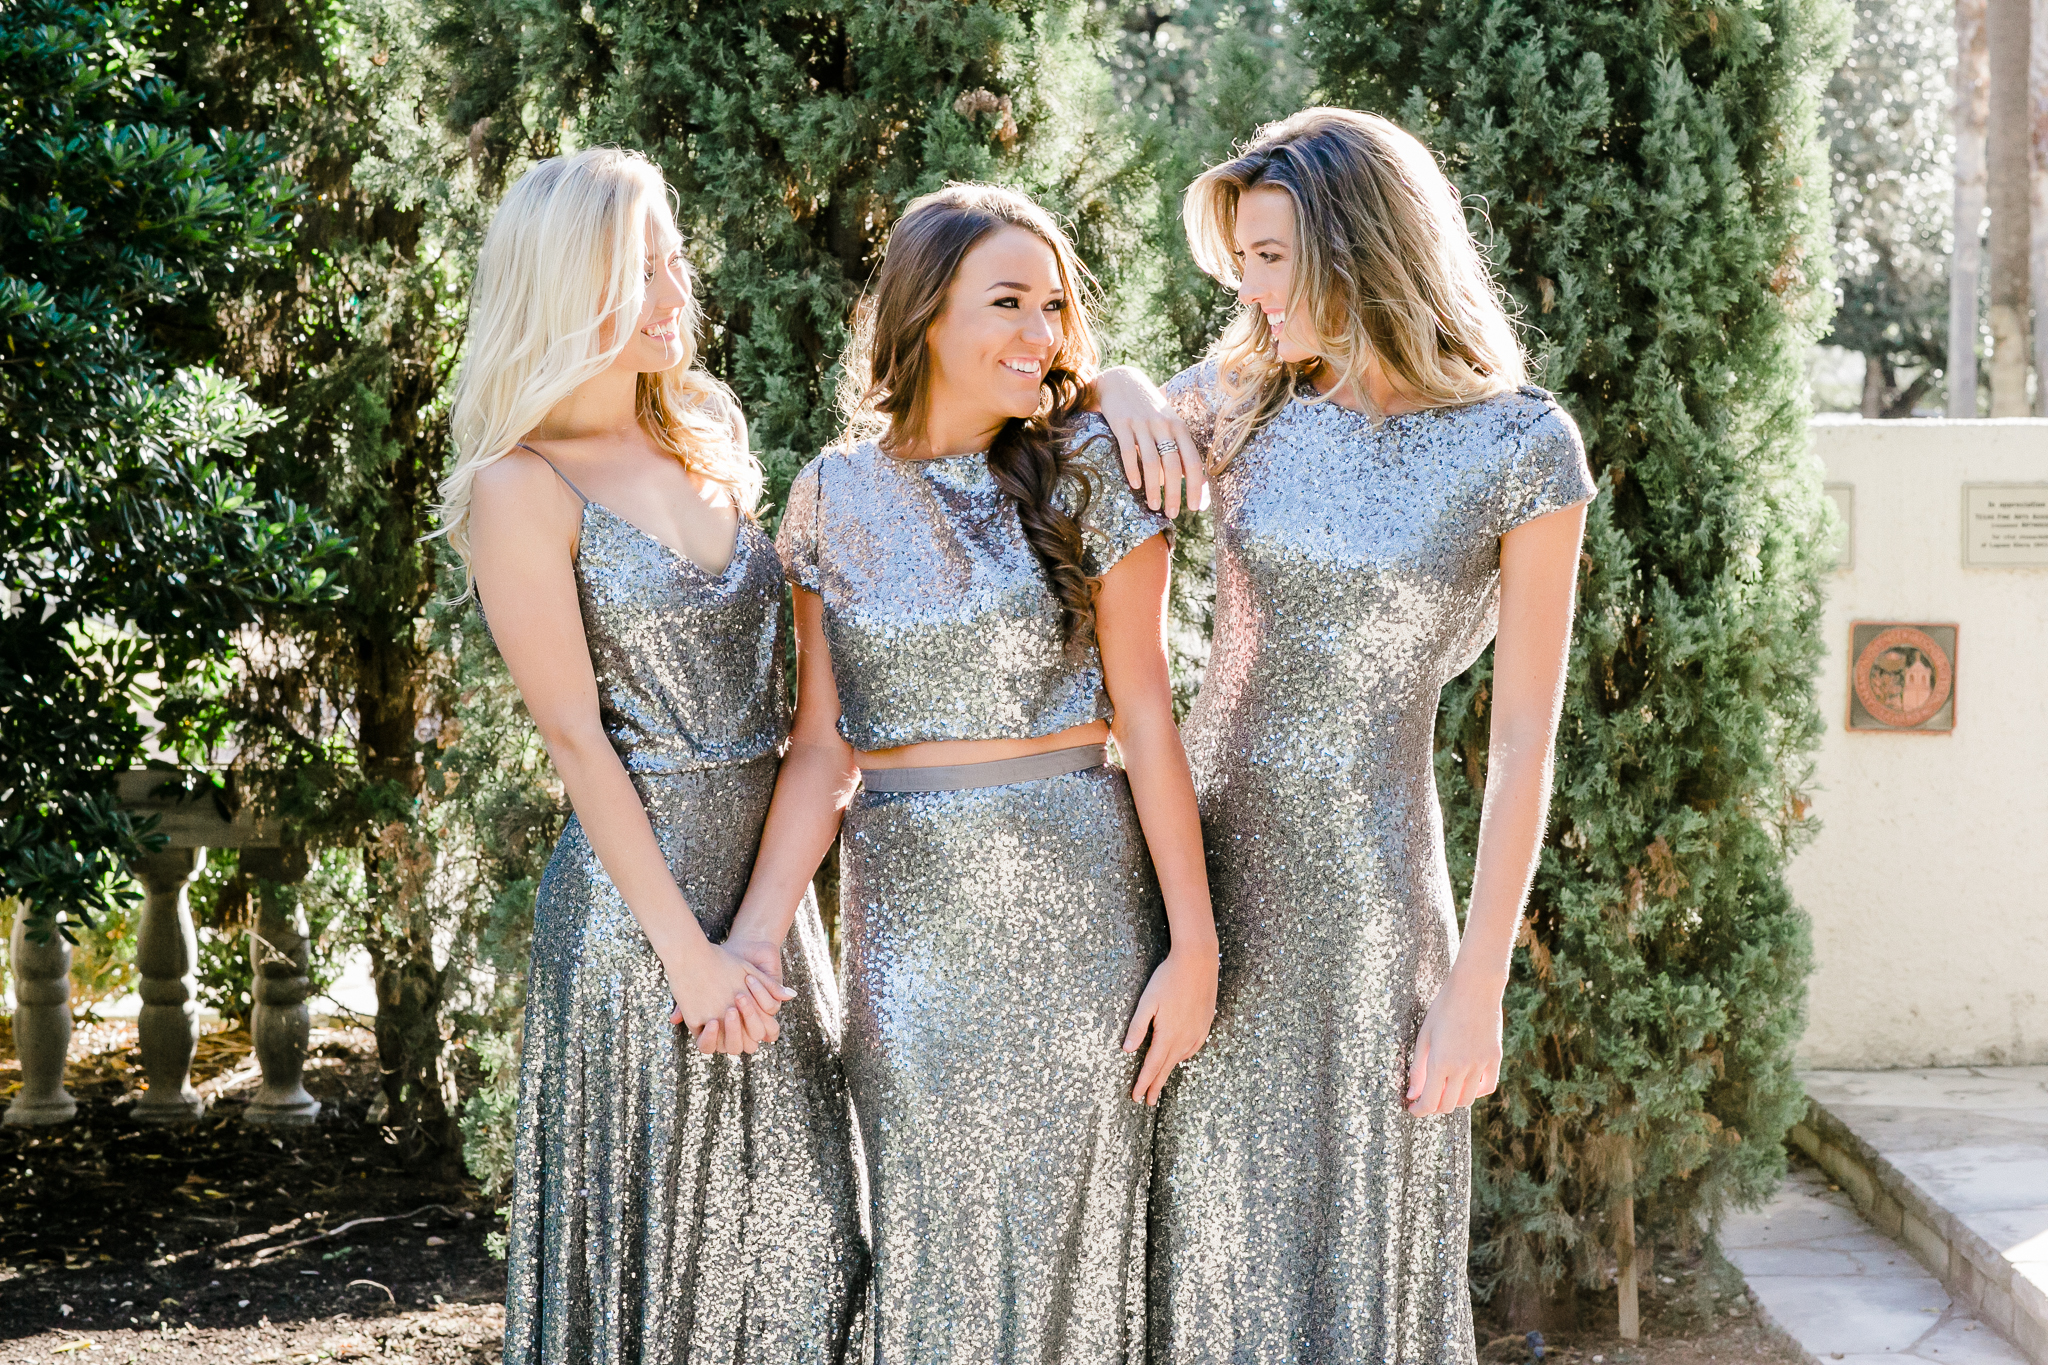 charcoal sequins making bridesmaids look like mermaids. Sequin skirt and top combo looks stunning in this beautiful dynamic color.